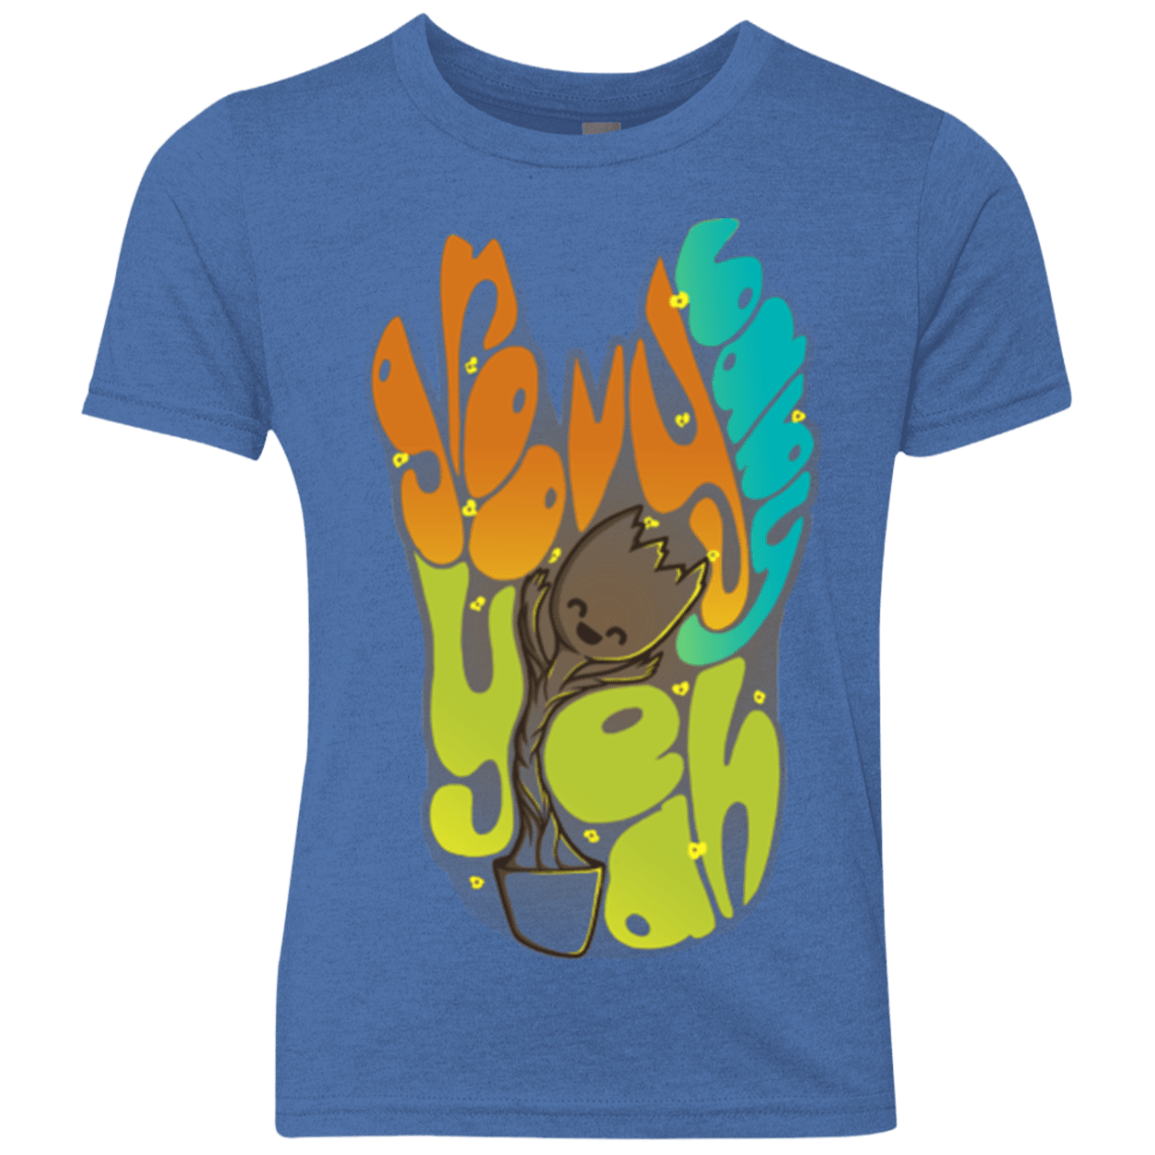 Groovy Baby Youth Triblend T-Shirt